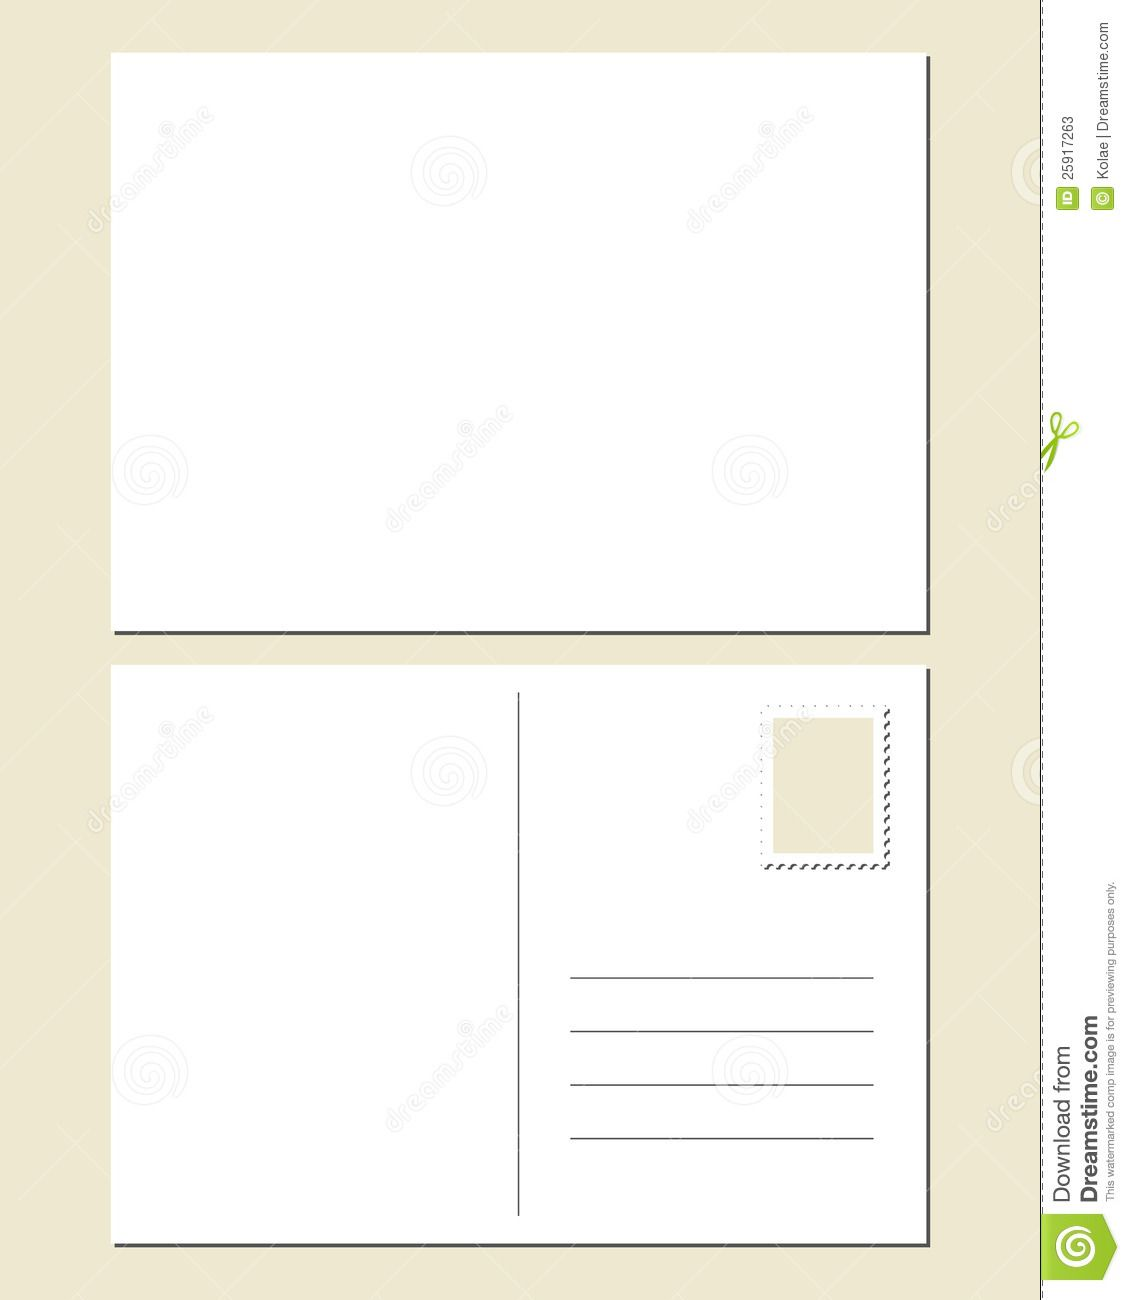 006 Impressive Postcard Template Front And Back Highest Quality  Free WordFull